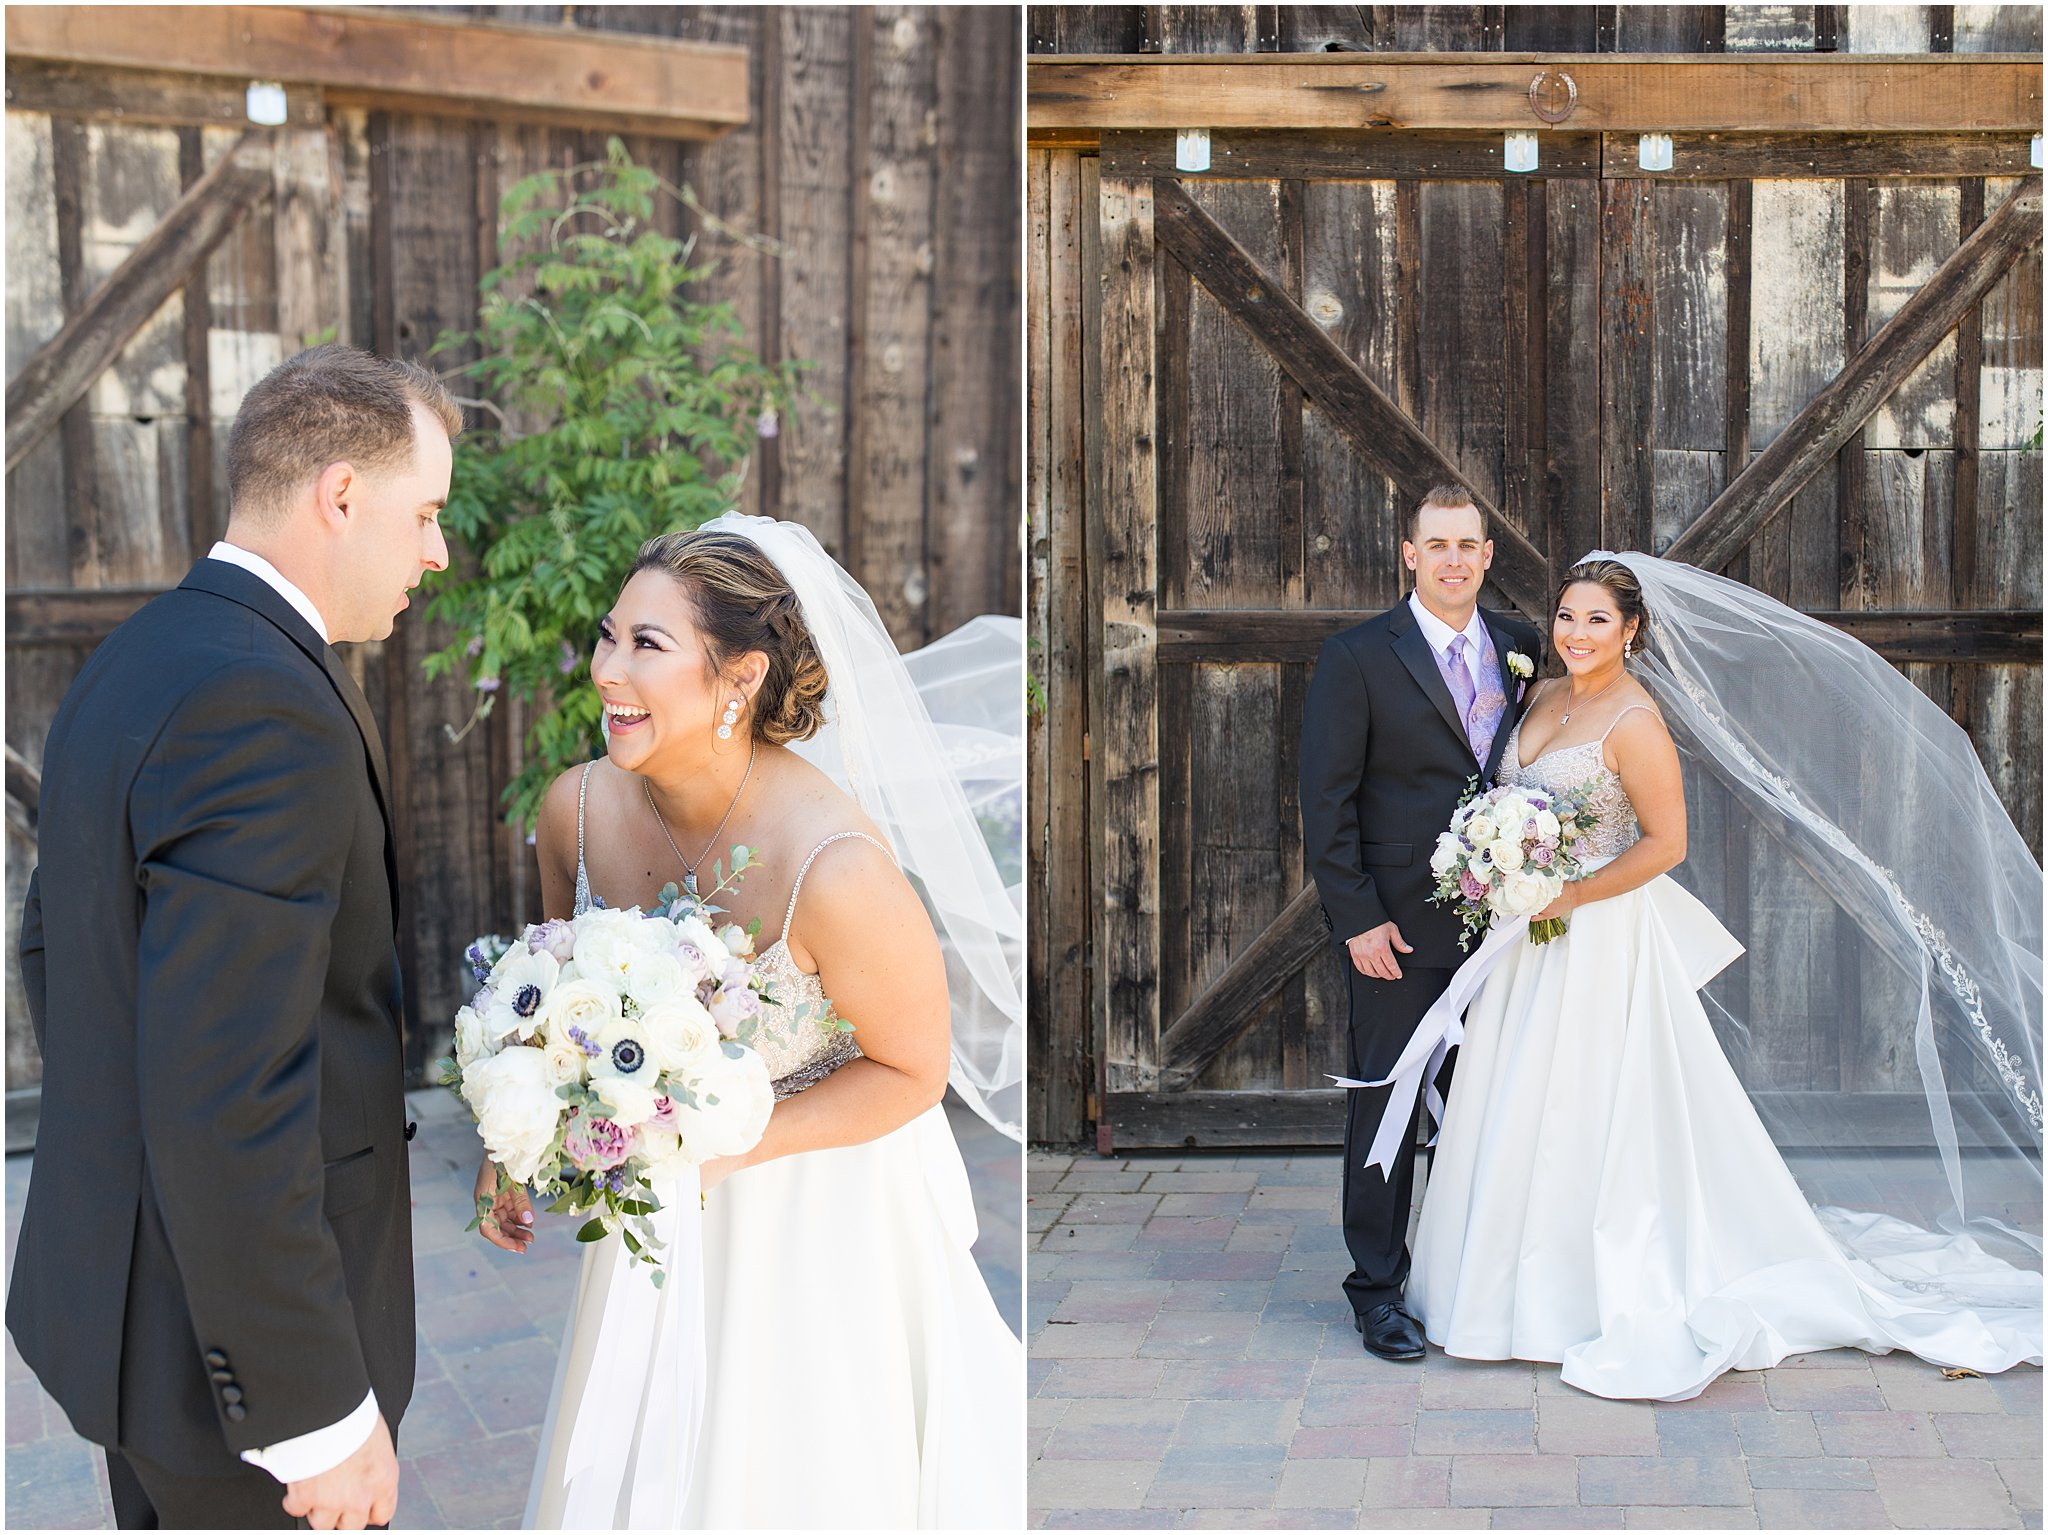 2019 wedding san juan bautista hacienda de leal vineyards bay area wedding photographer_0019.jpg